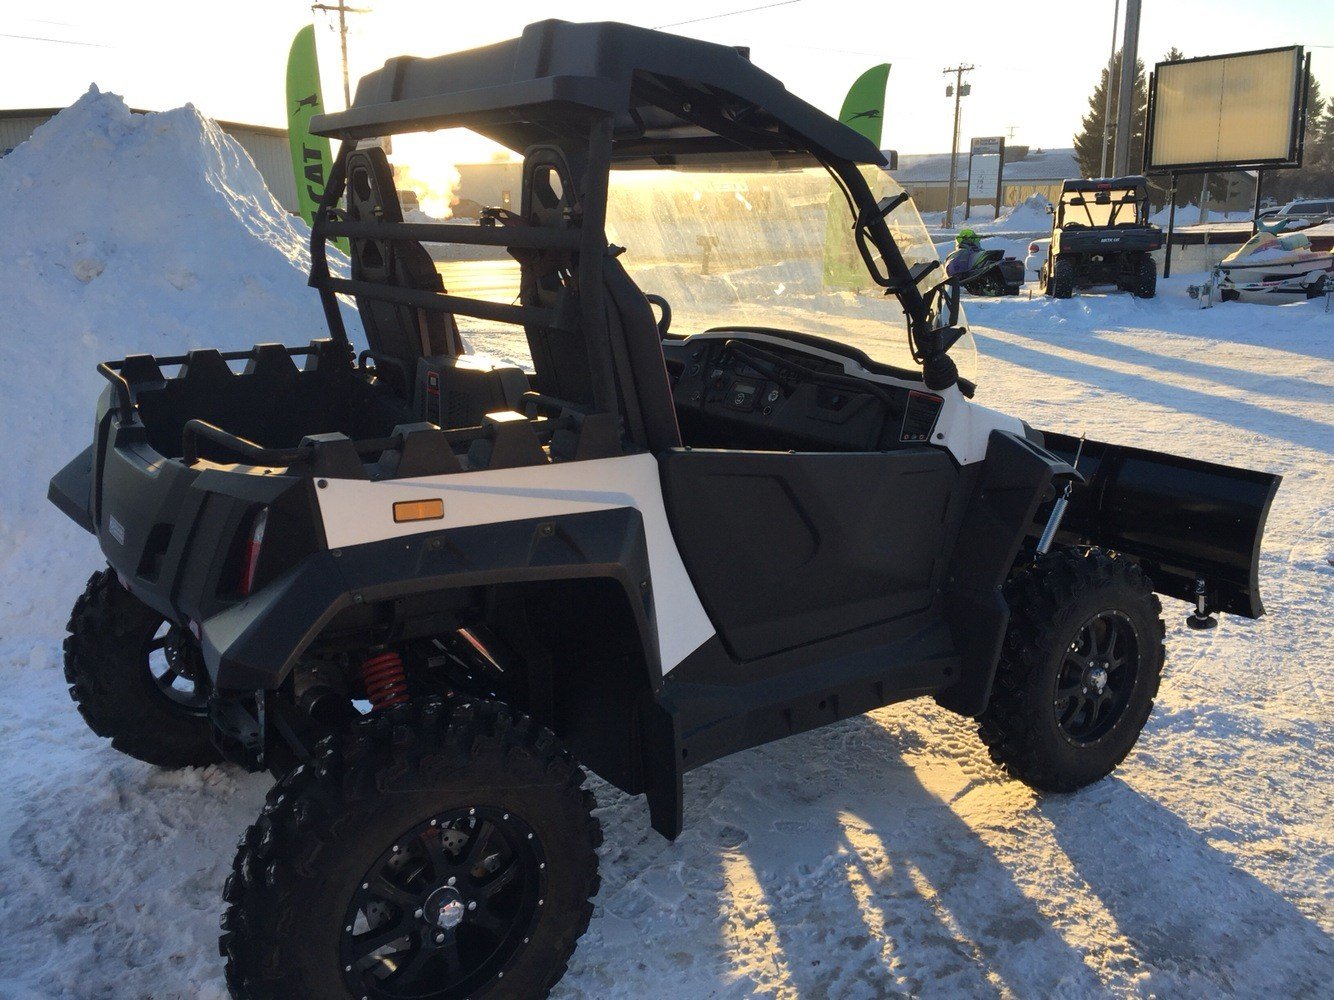 2017 Odes RAIDER LT 800CC in Bismarck, North Dakota